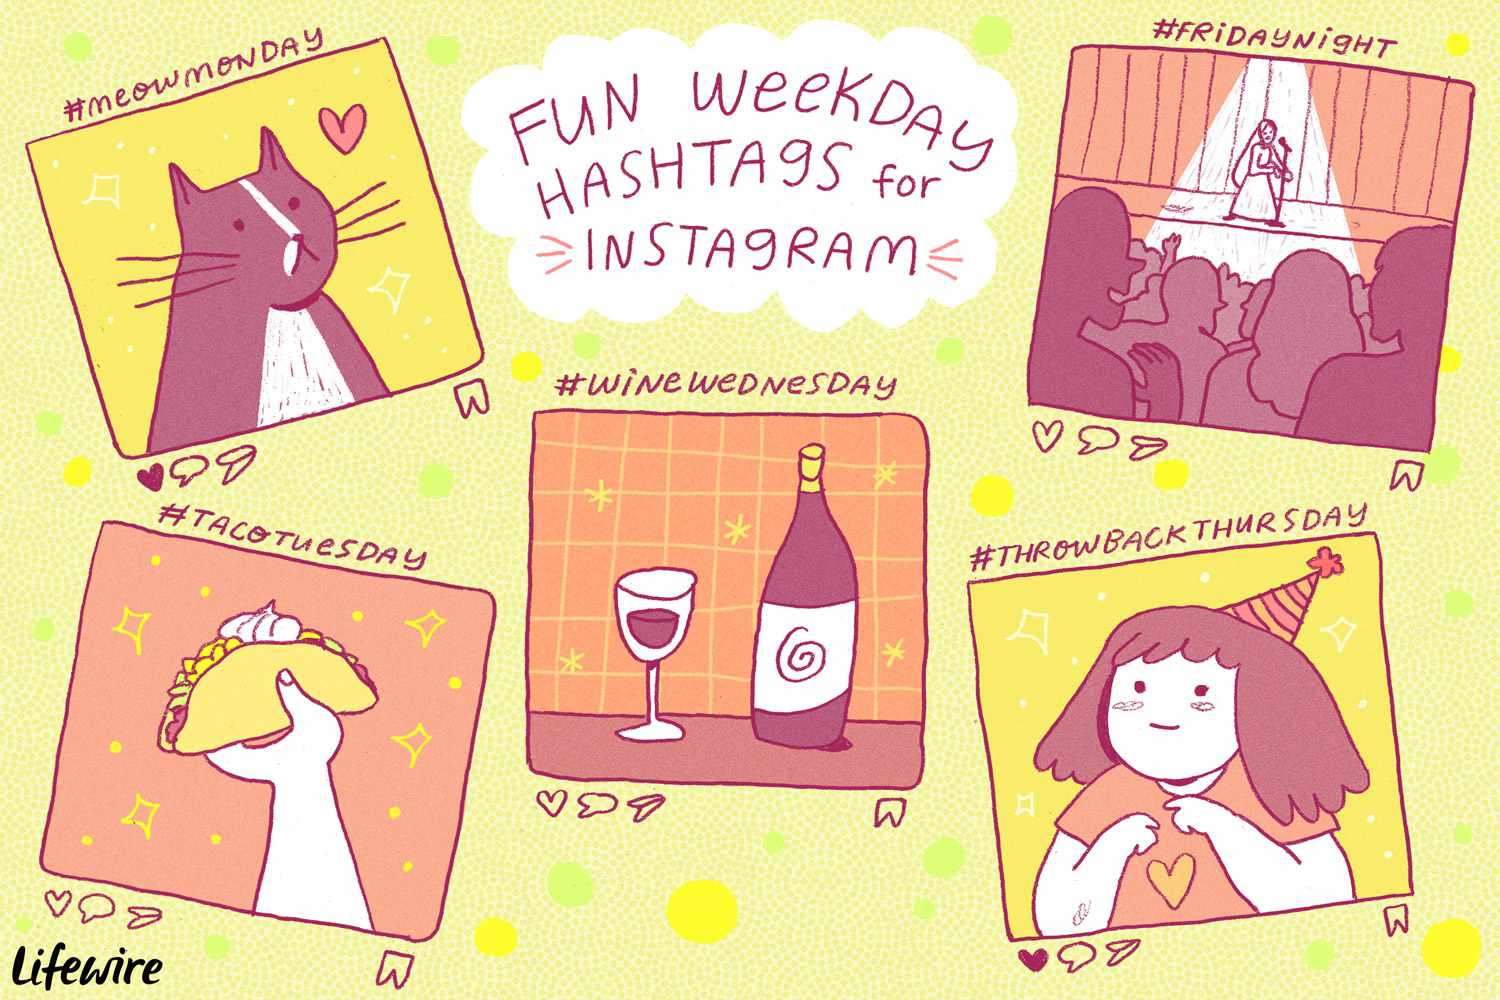 Fun Instagram Hashtags for Thursday Friday and More